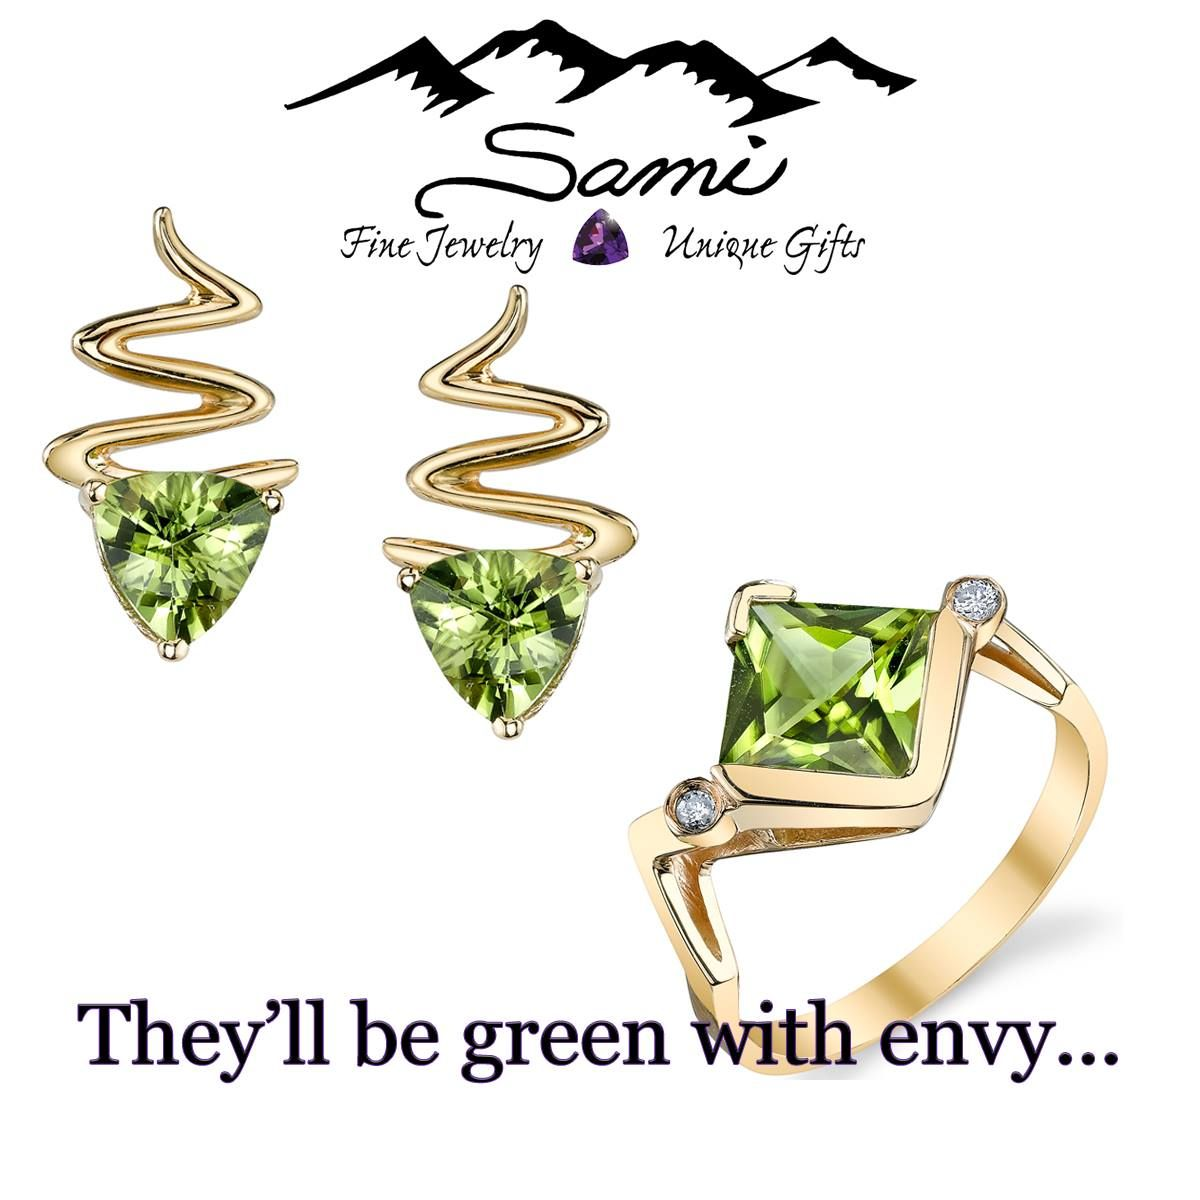 33++ Jewelry stores in fountain hills az ideas in 2021